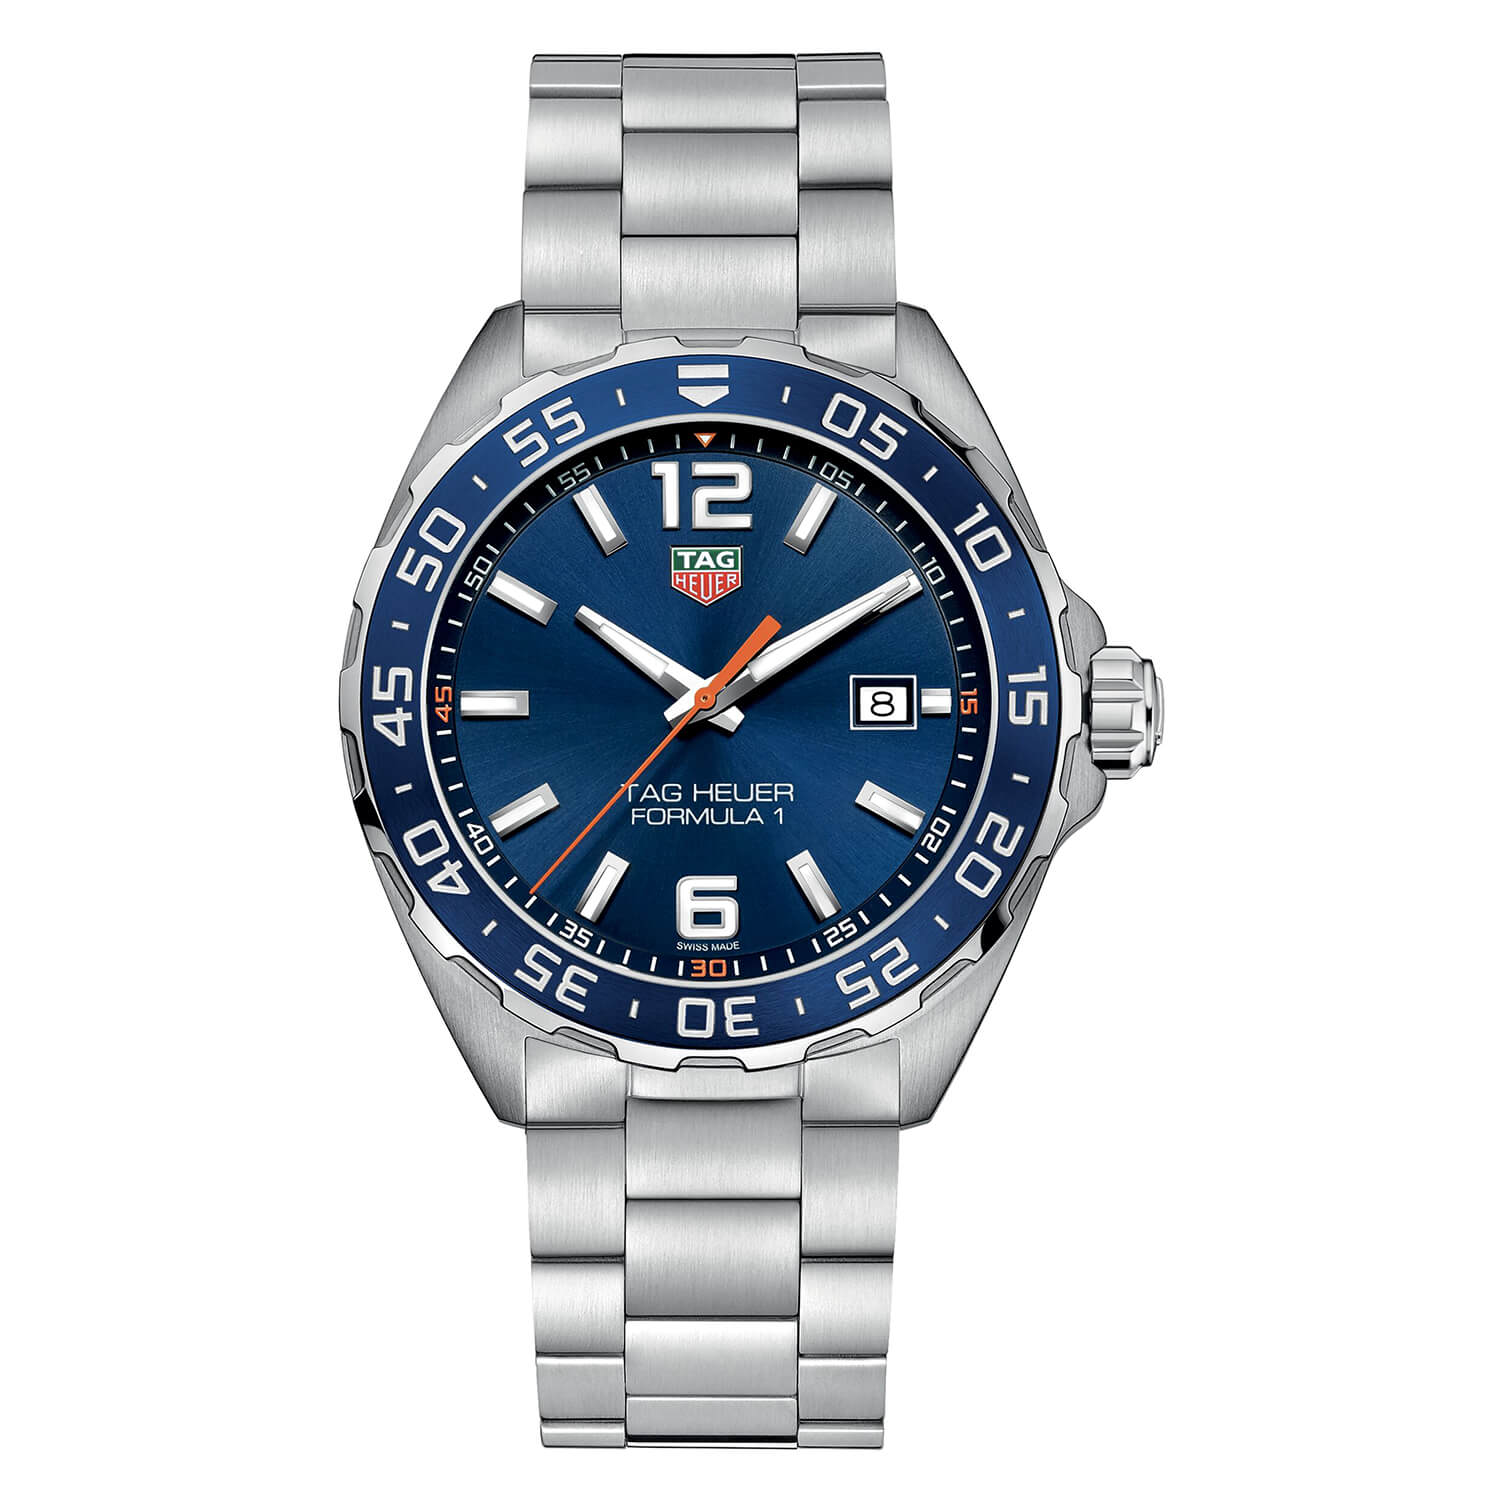 TAG F1 BLUE DIAL BLUE BEZEL STEEL CASE AND BRACELET